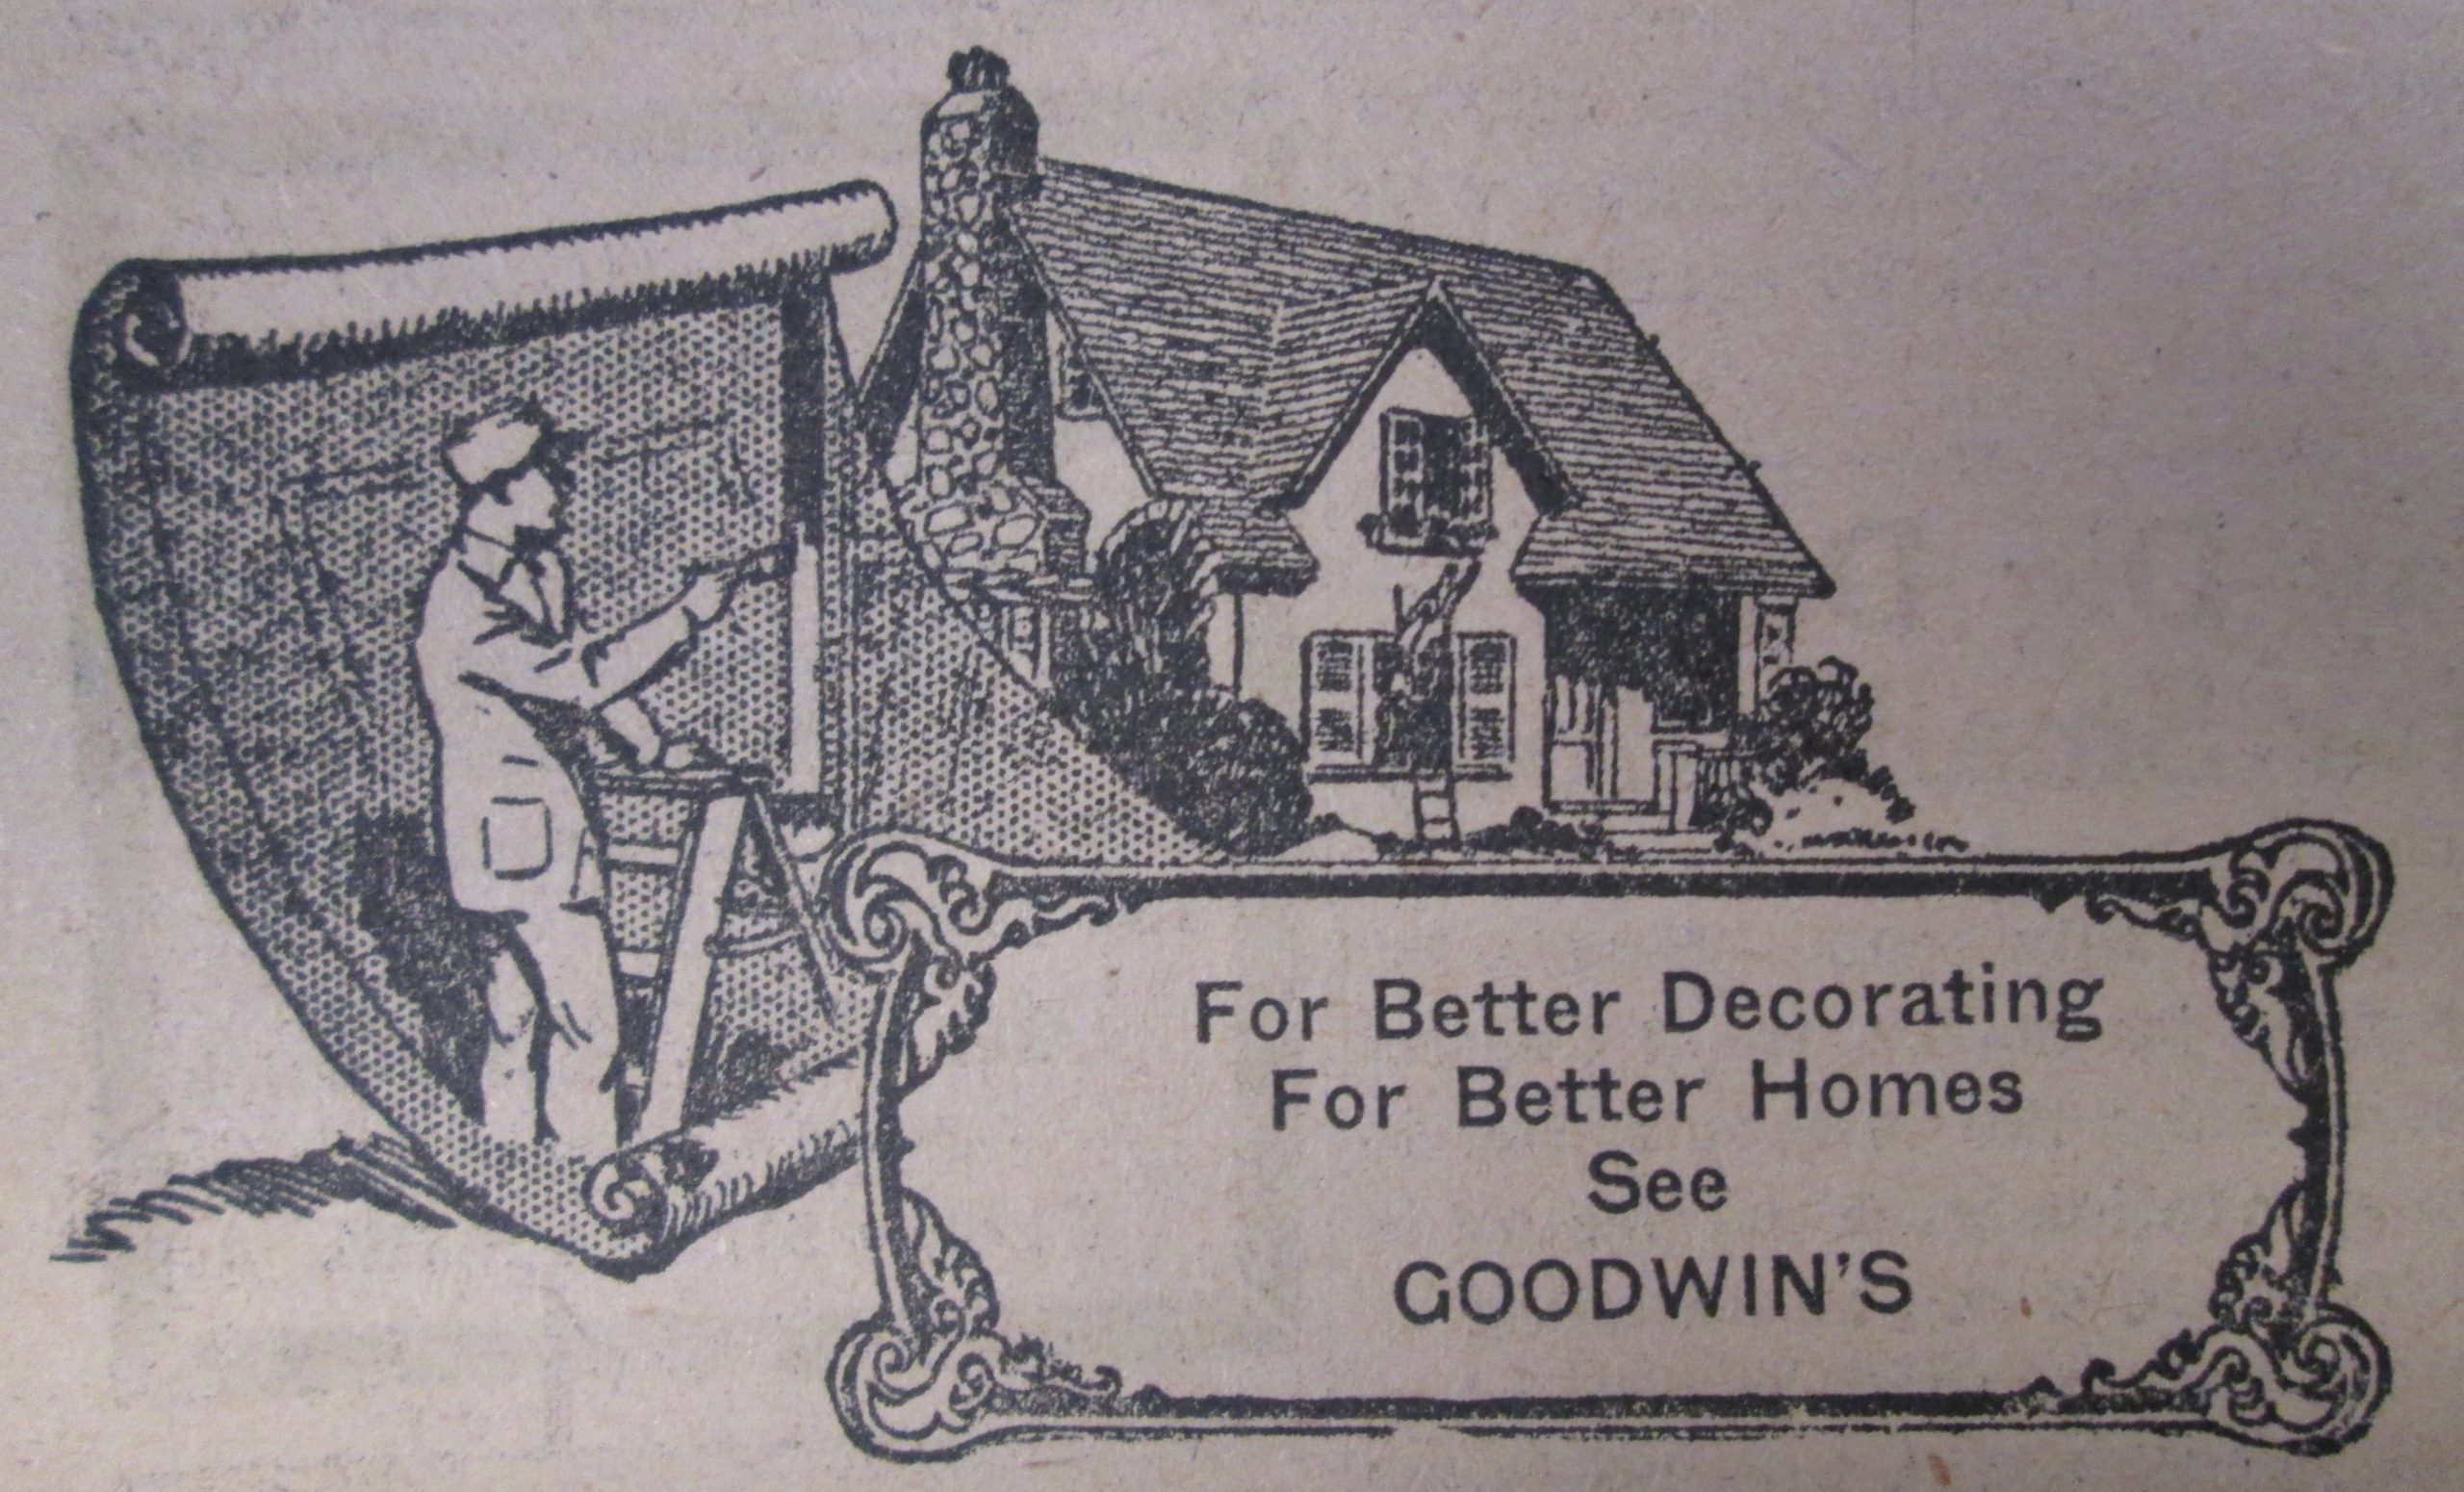 Image of illustrated advertisement showing a man on a ladder behind a giant roll of wallpaper, looking towards a house